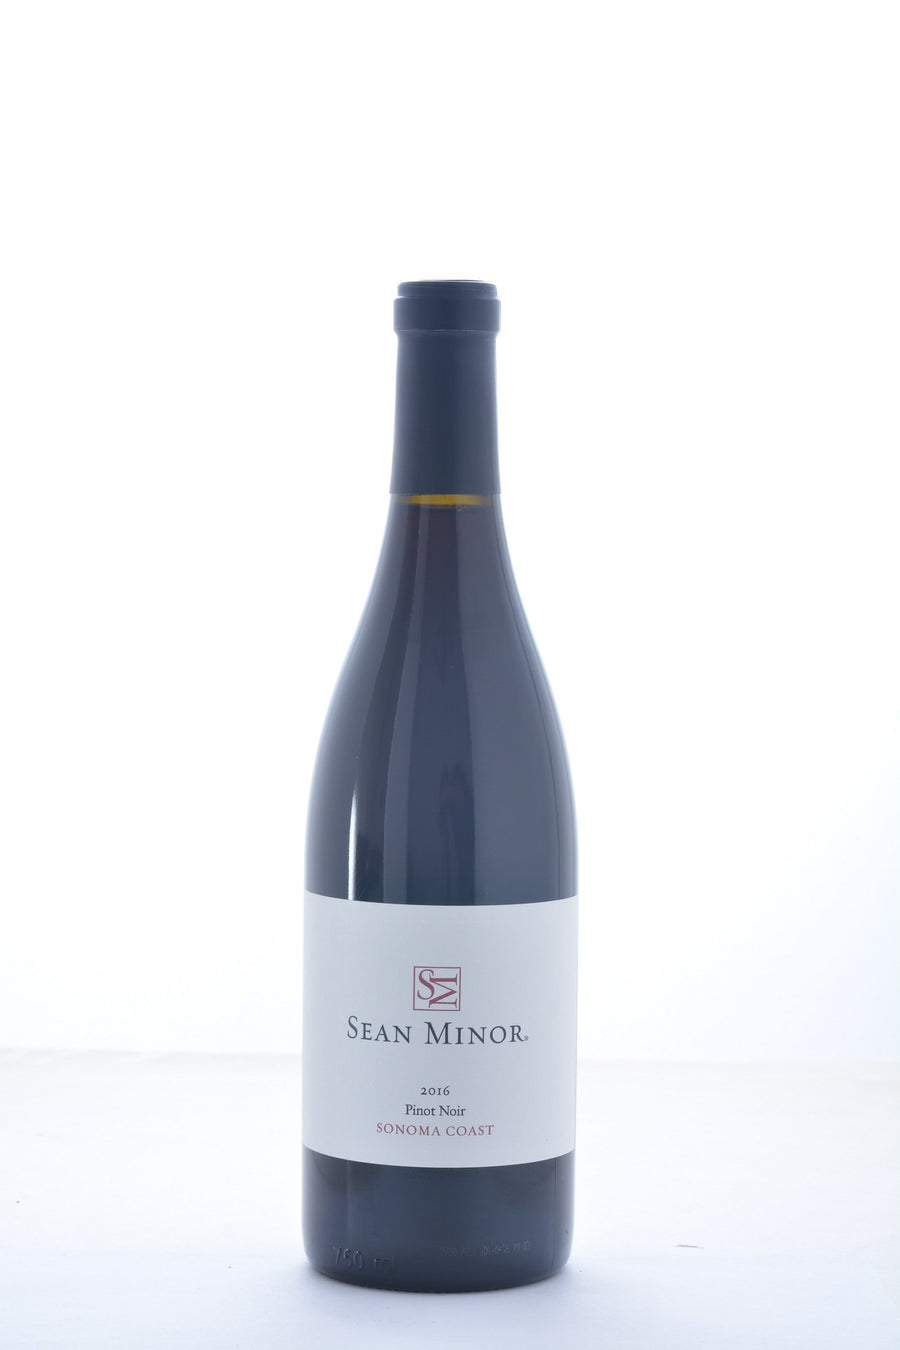 Sean Minor Pinot Noir Sonoma Coast 2016 - 750 ML - Wine on Sale